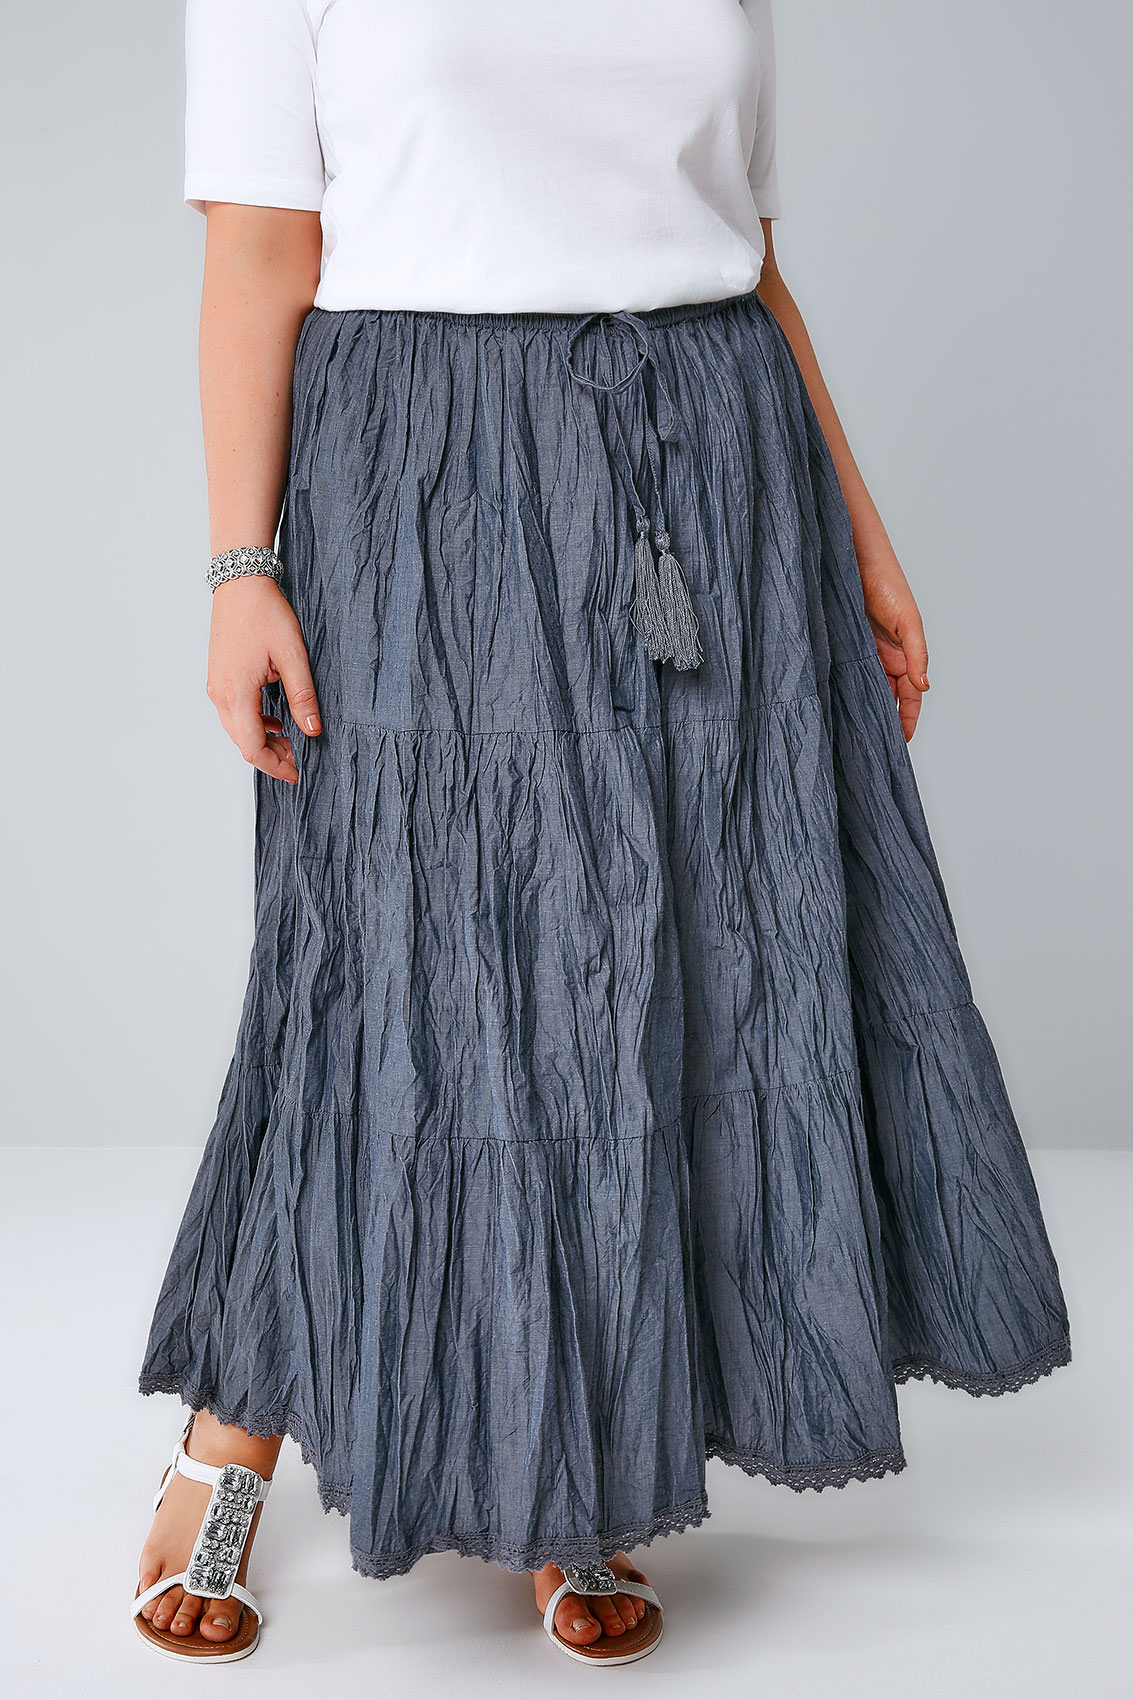 All your favorite long skirts come in white, green, and pink floral prints, bold chevron patterns, flowy hemlines, and pencil maxi skirts with slits. Try a romantic chiffon maxi skirt with flirty mesh insets or flower applique overlays.